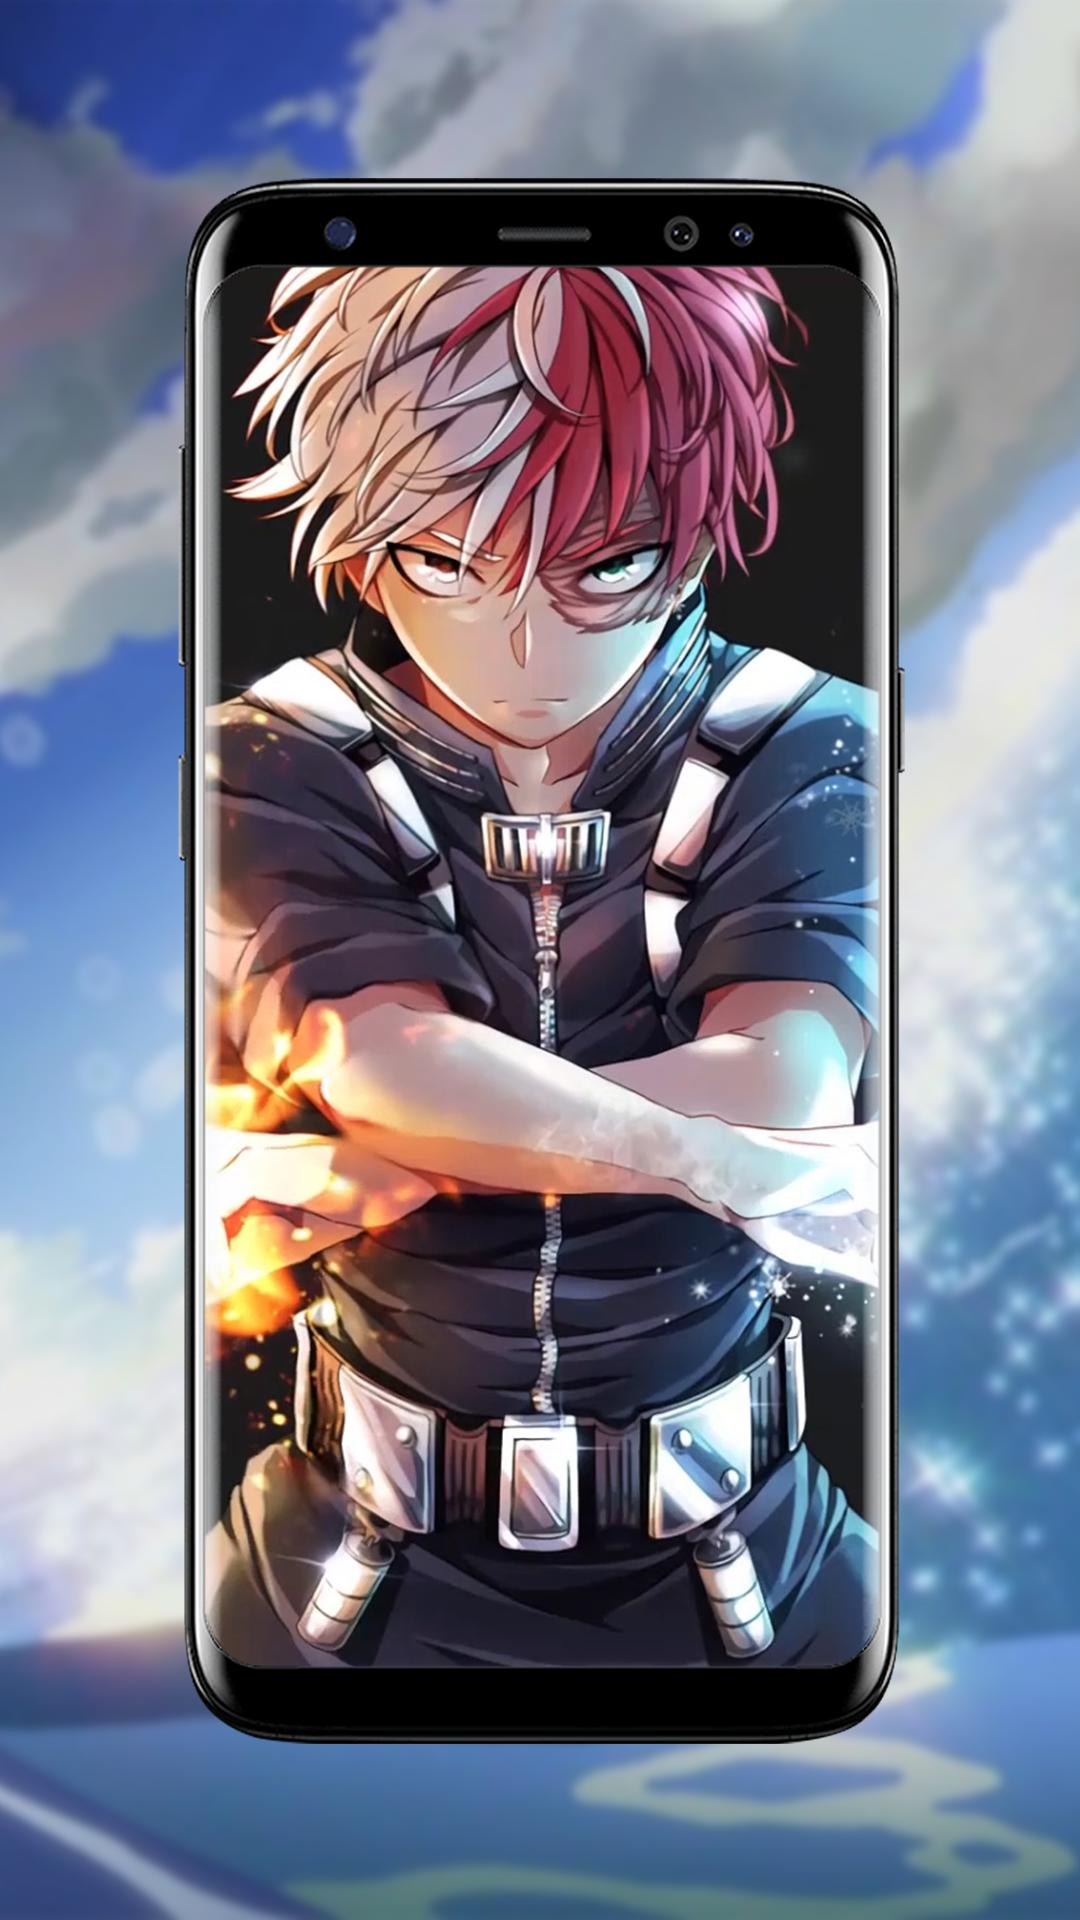 Shoto Todoroki Anime Live Wallpaper For Android Apk Download